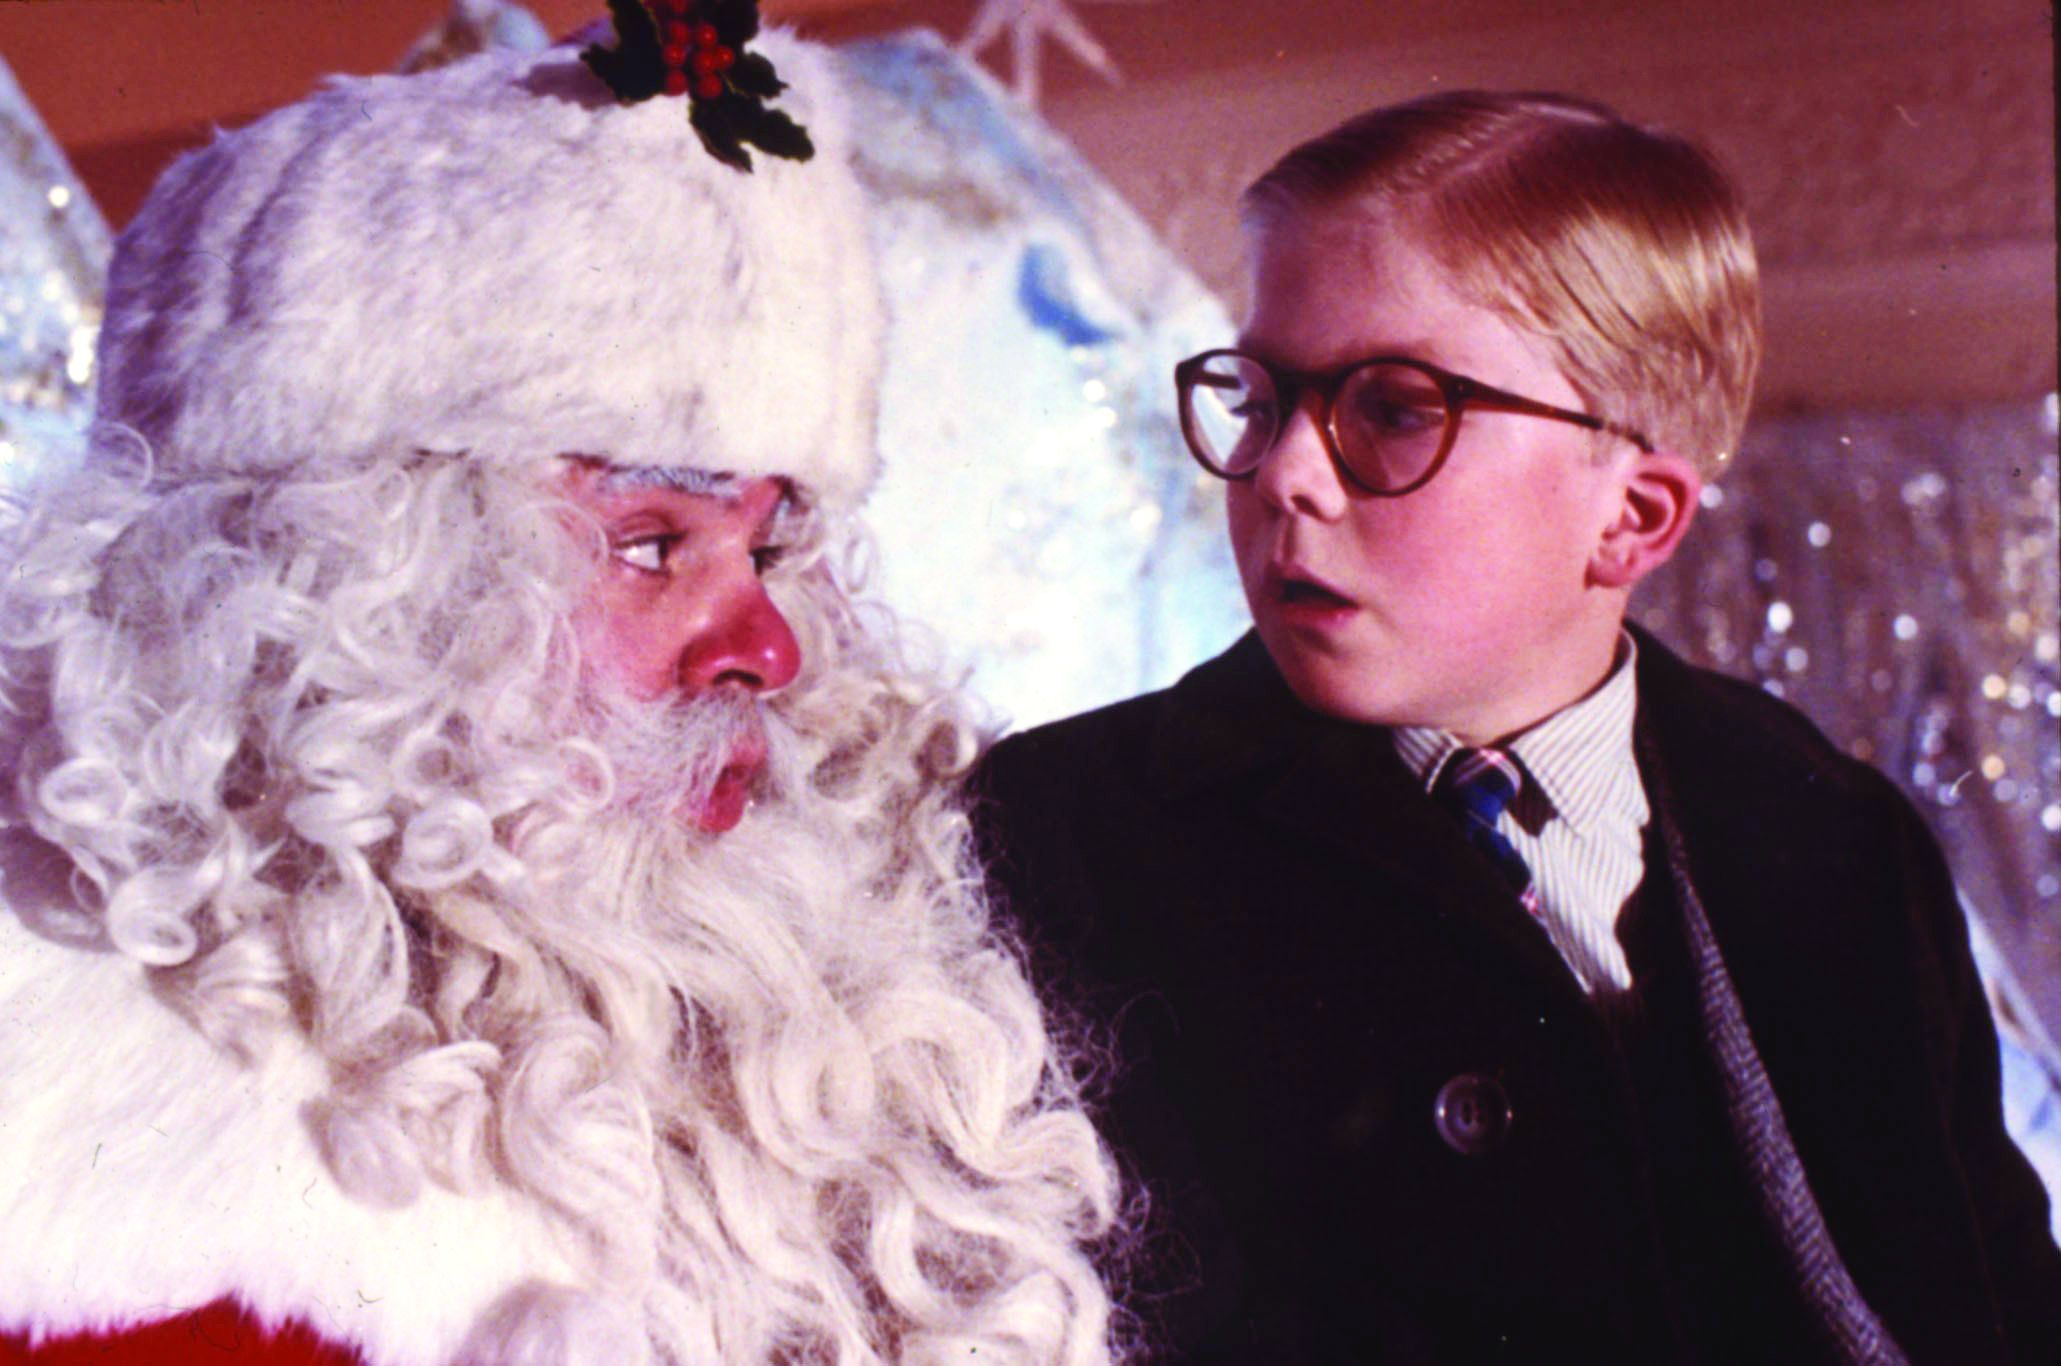 Ralphie Christmas Story.Hanukkah Harry Ralphie In A Christmas Story And The